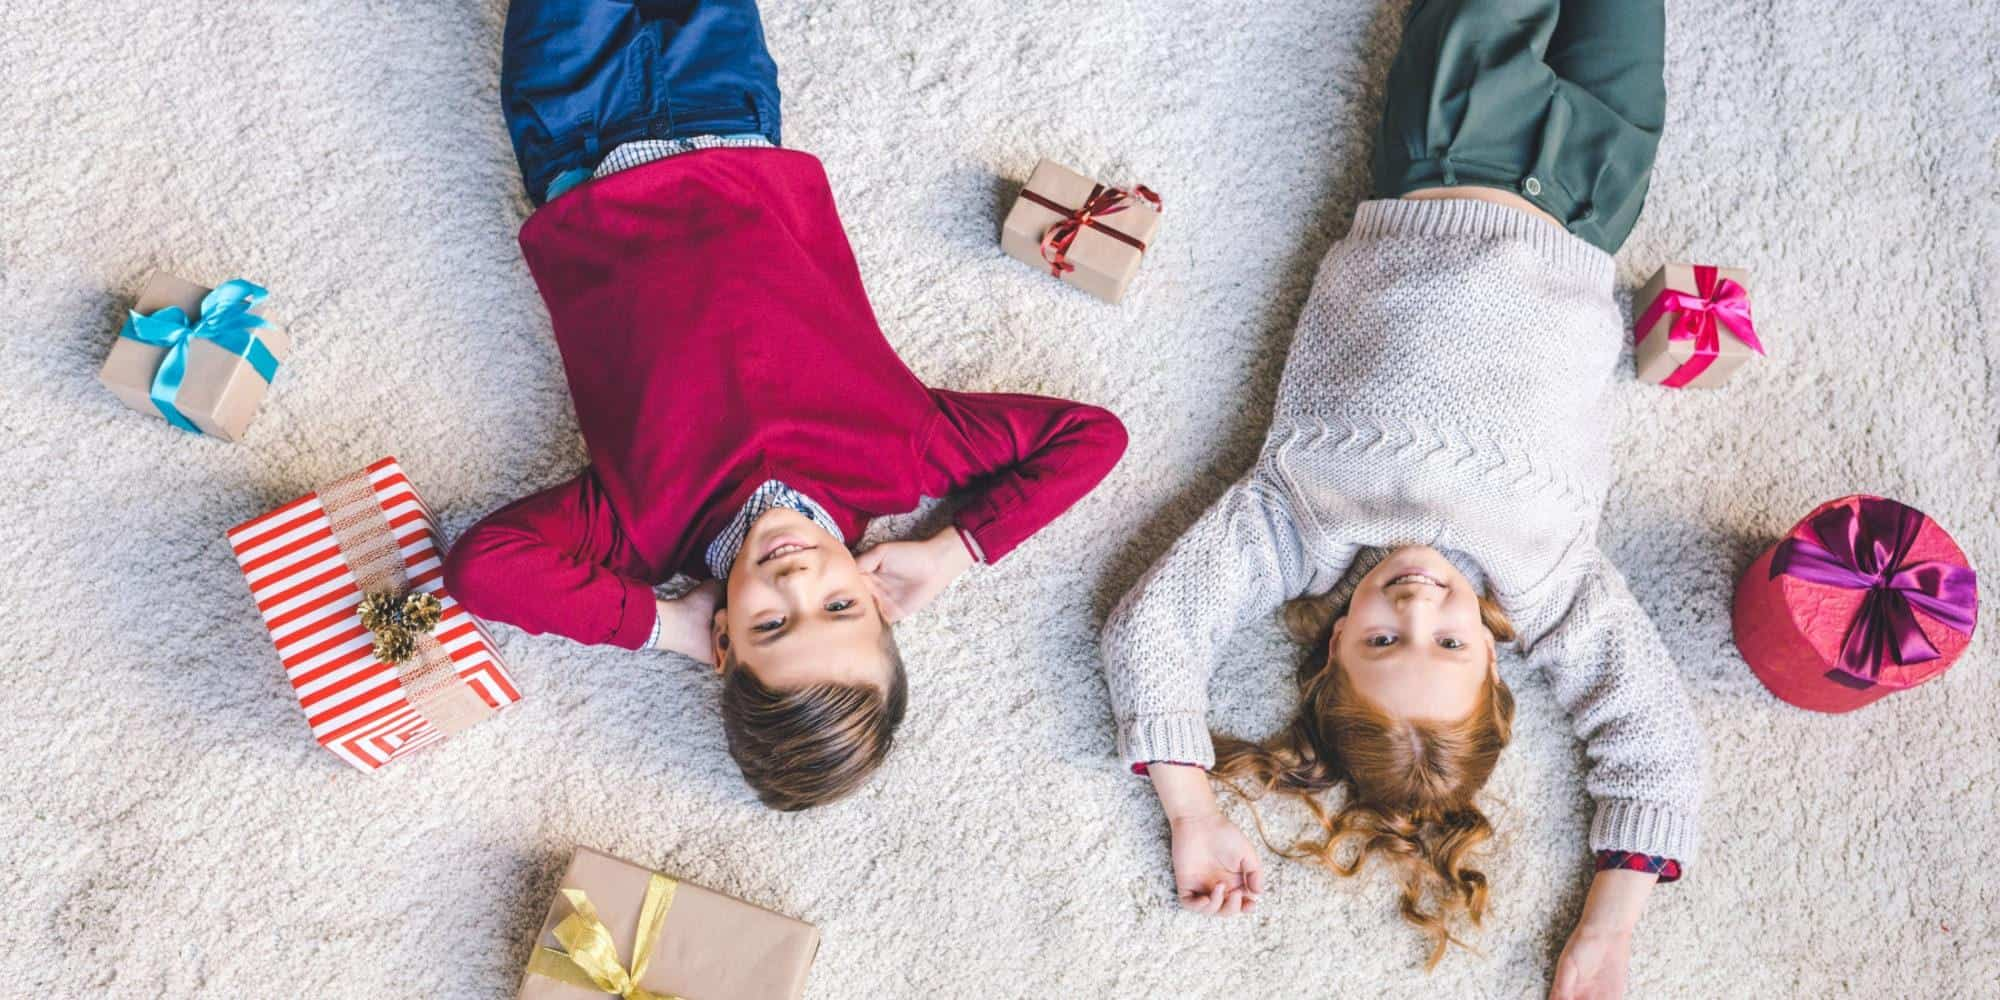 Two children laying on carpet surrounded by wrapped gifts